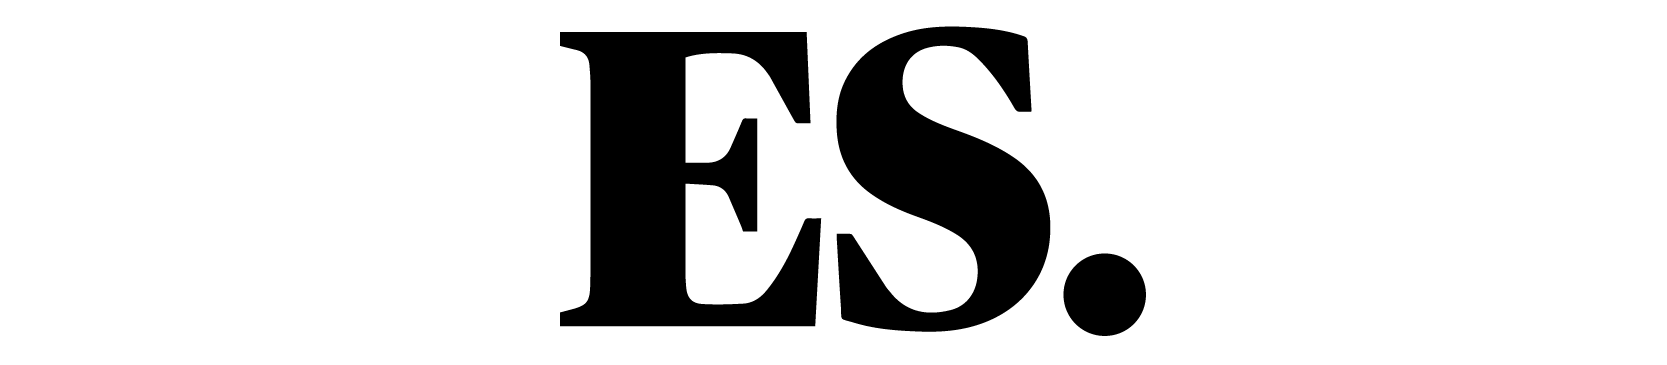 Press logos-08 copy_2.png